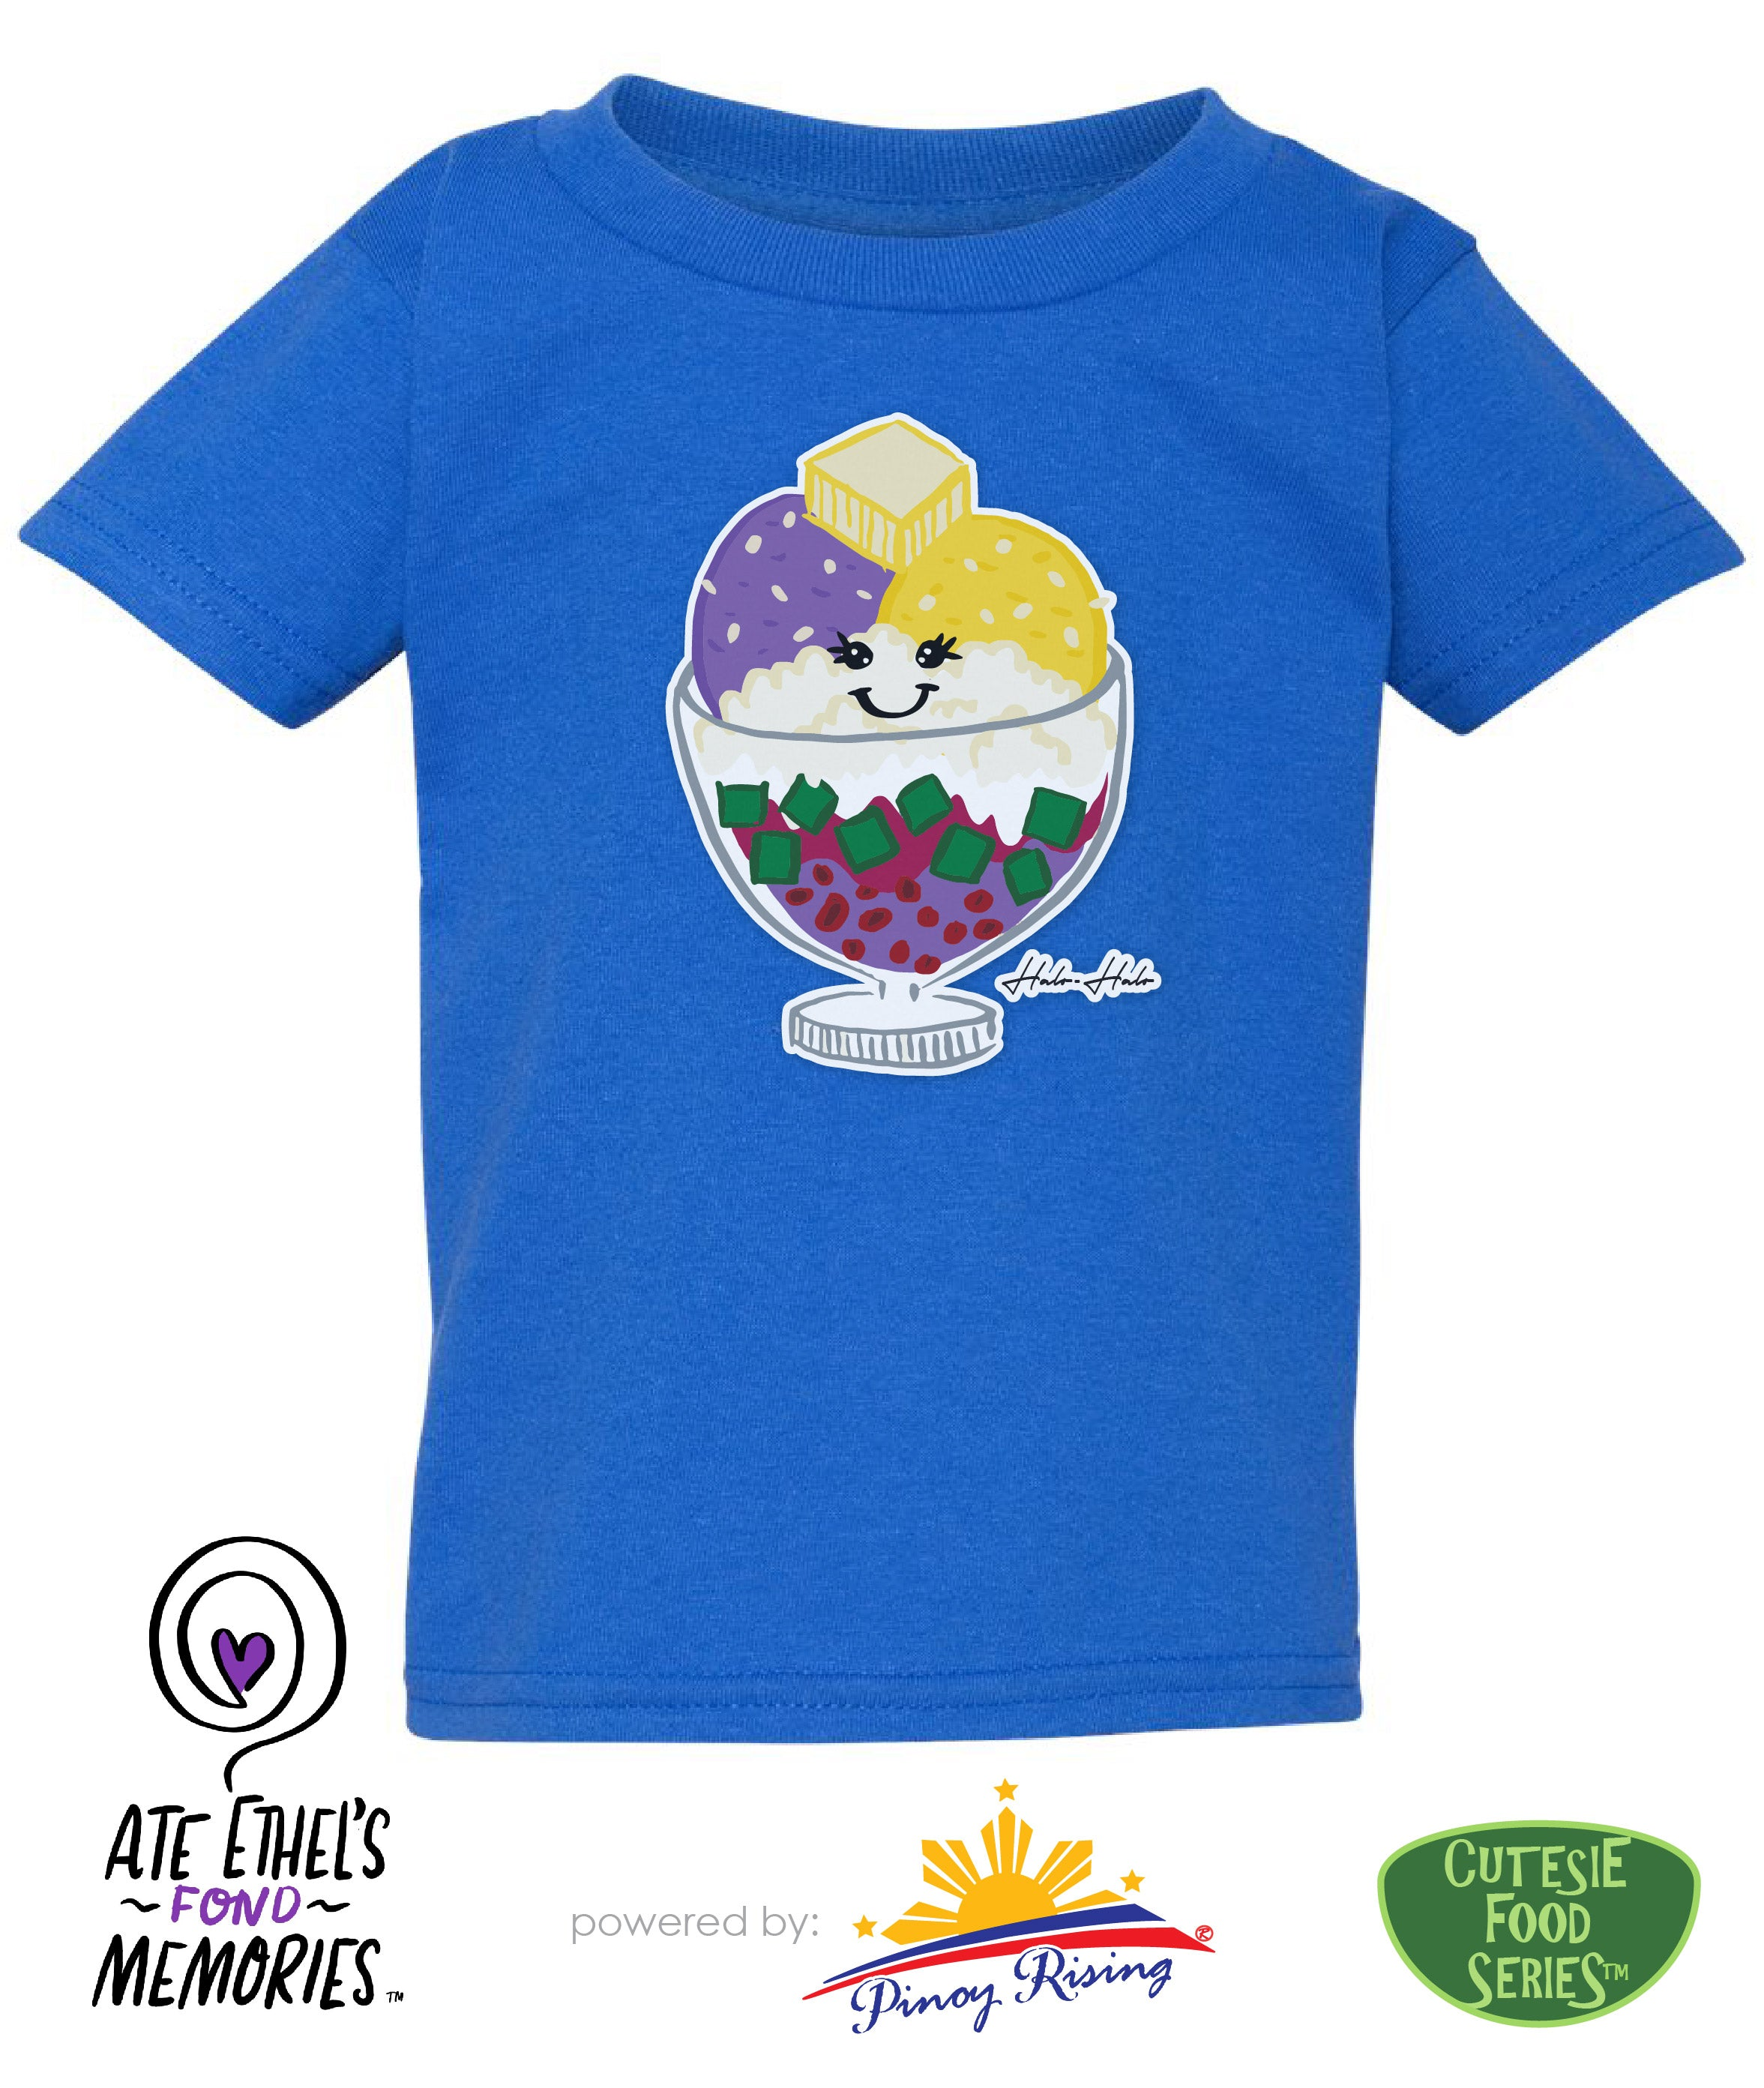 Halo-Halo Shirt - Toddler / Kids - Cutesie Foodie Series